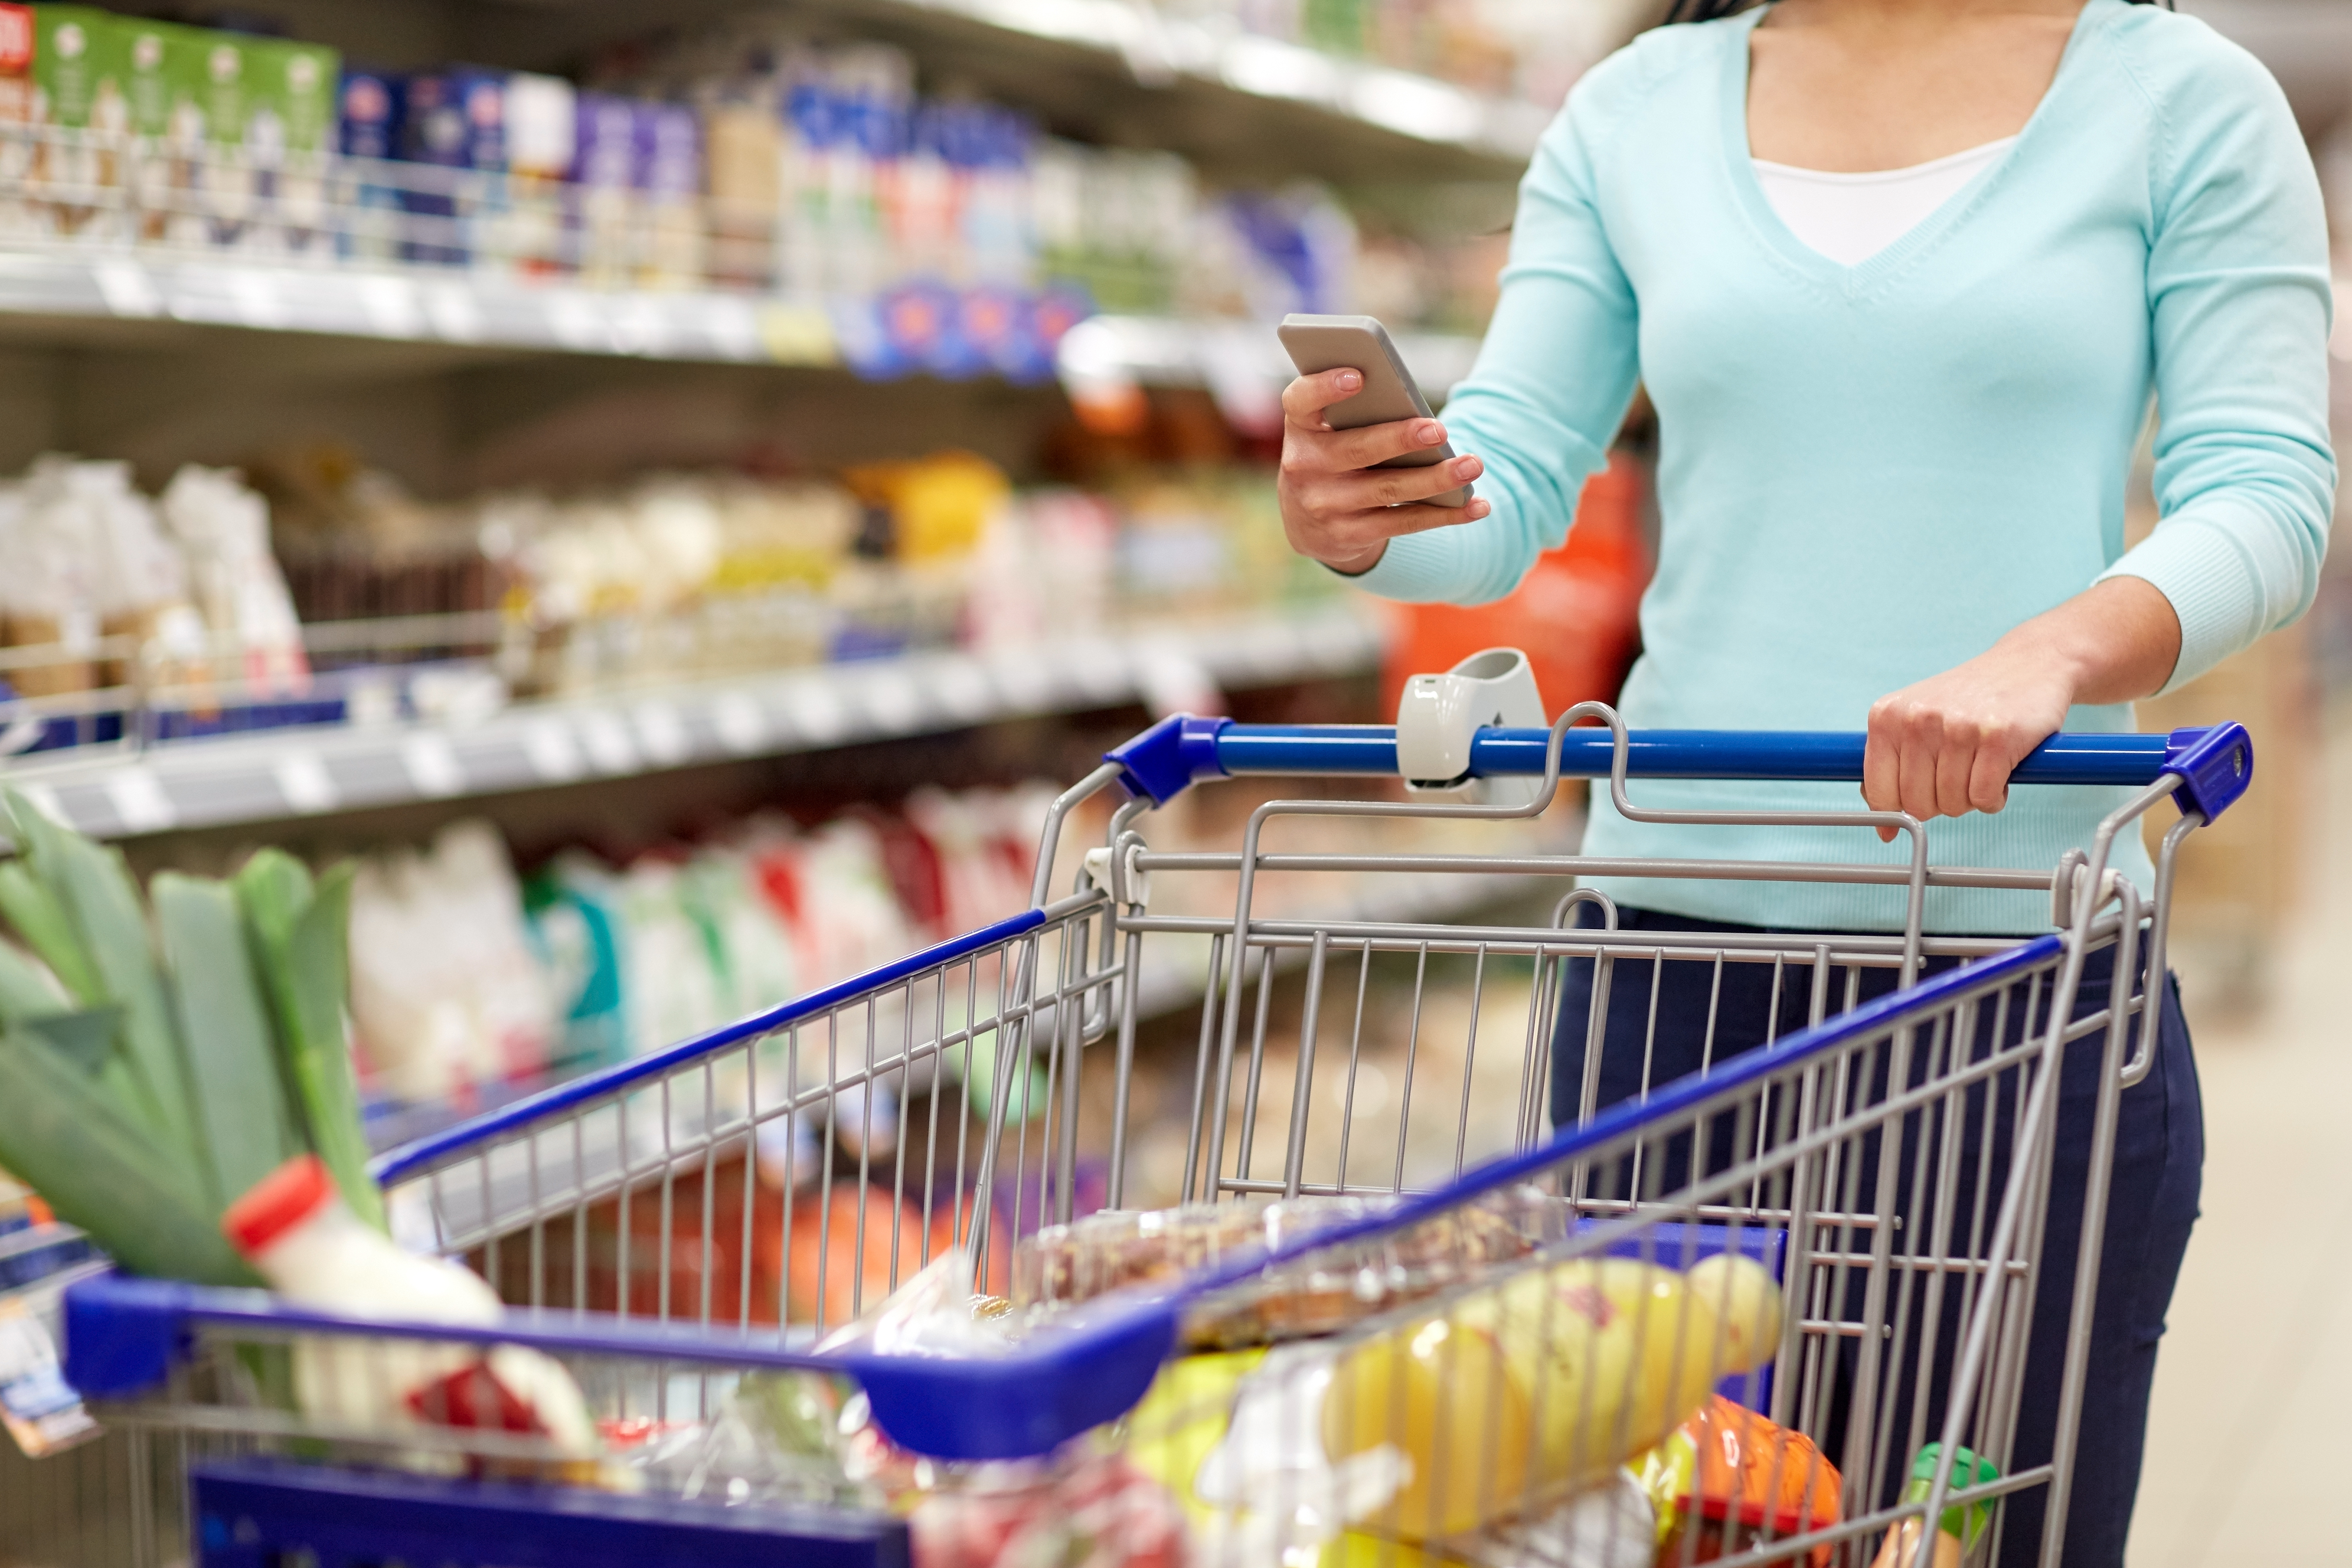 women in grocery store with cart and looking at phone